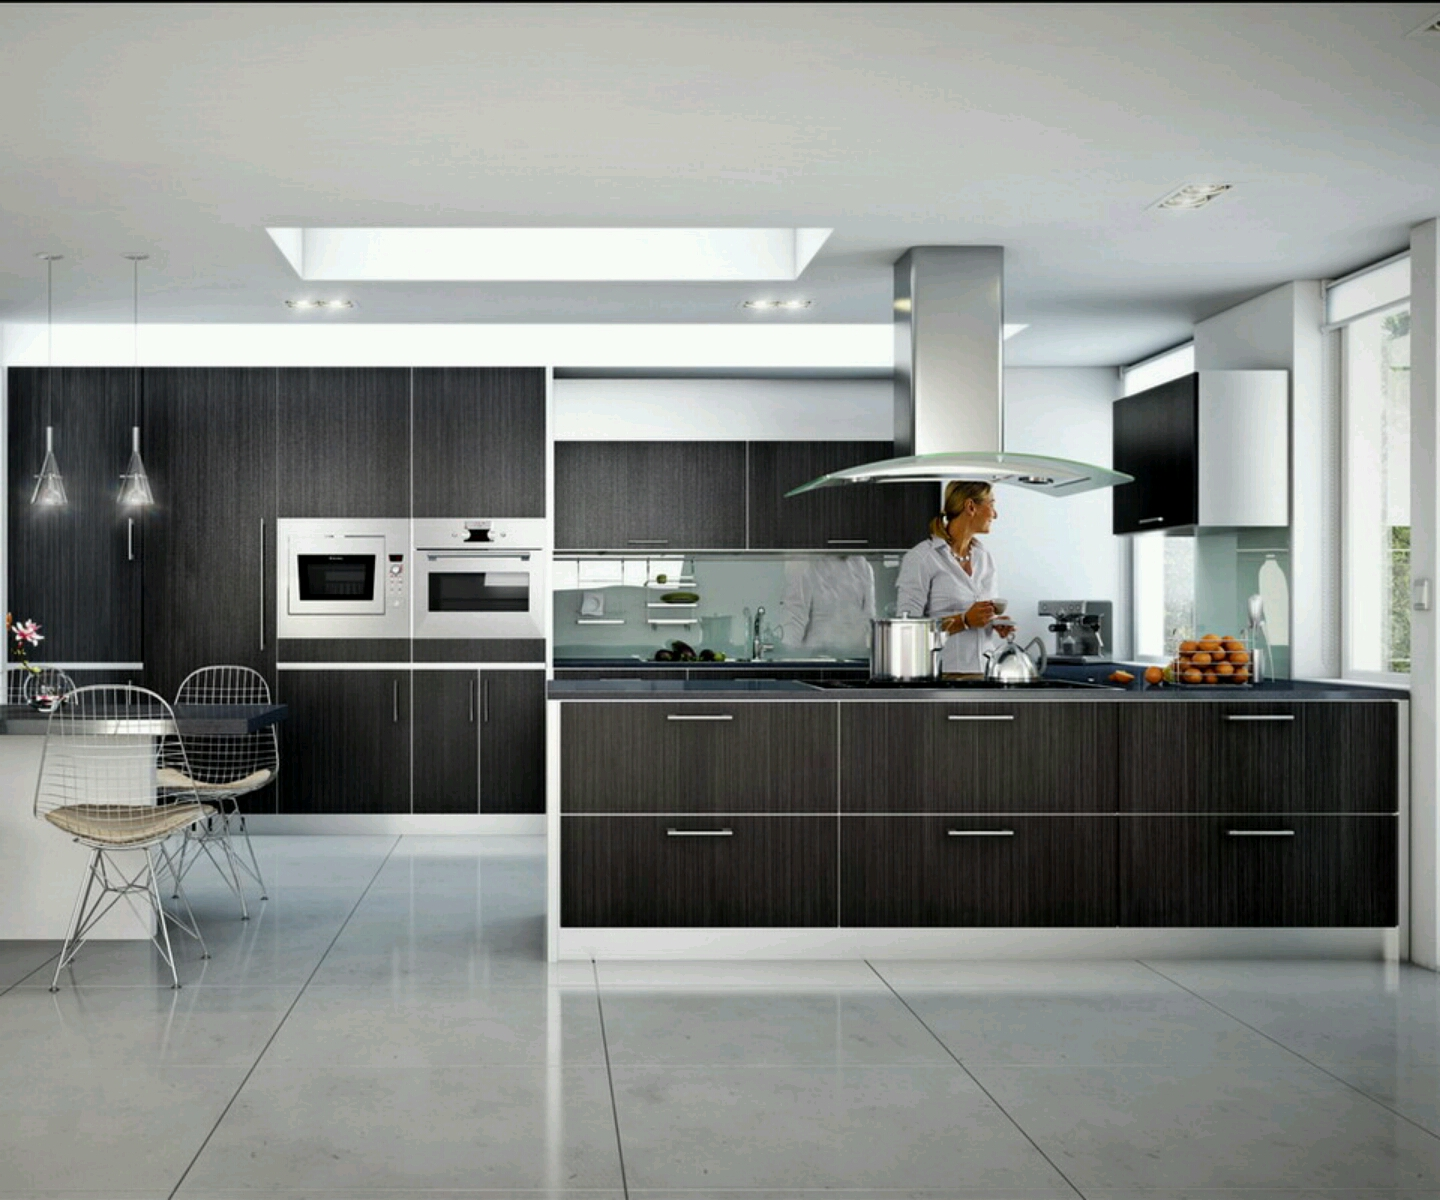 Kitchen Ideas: 30 Modern Kitchen Design Ideas